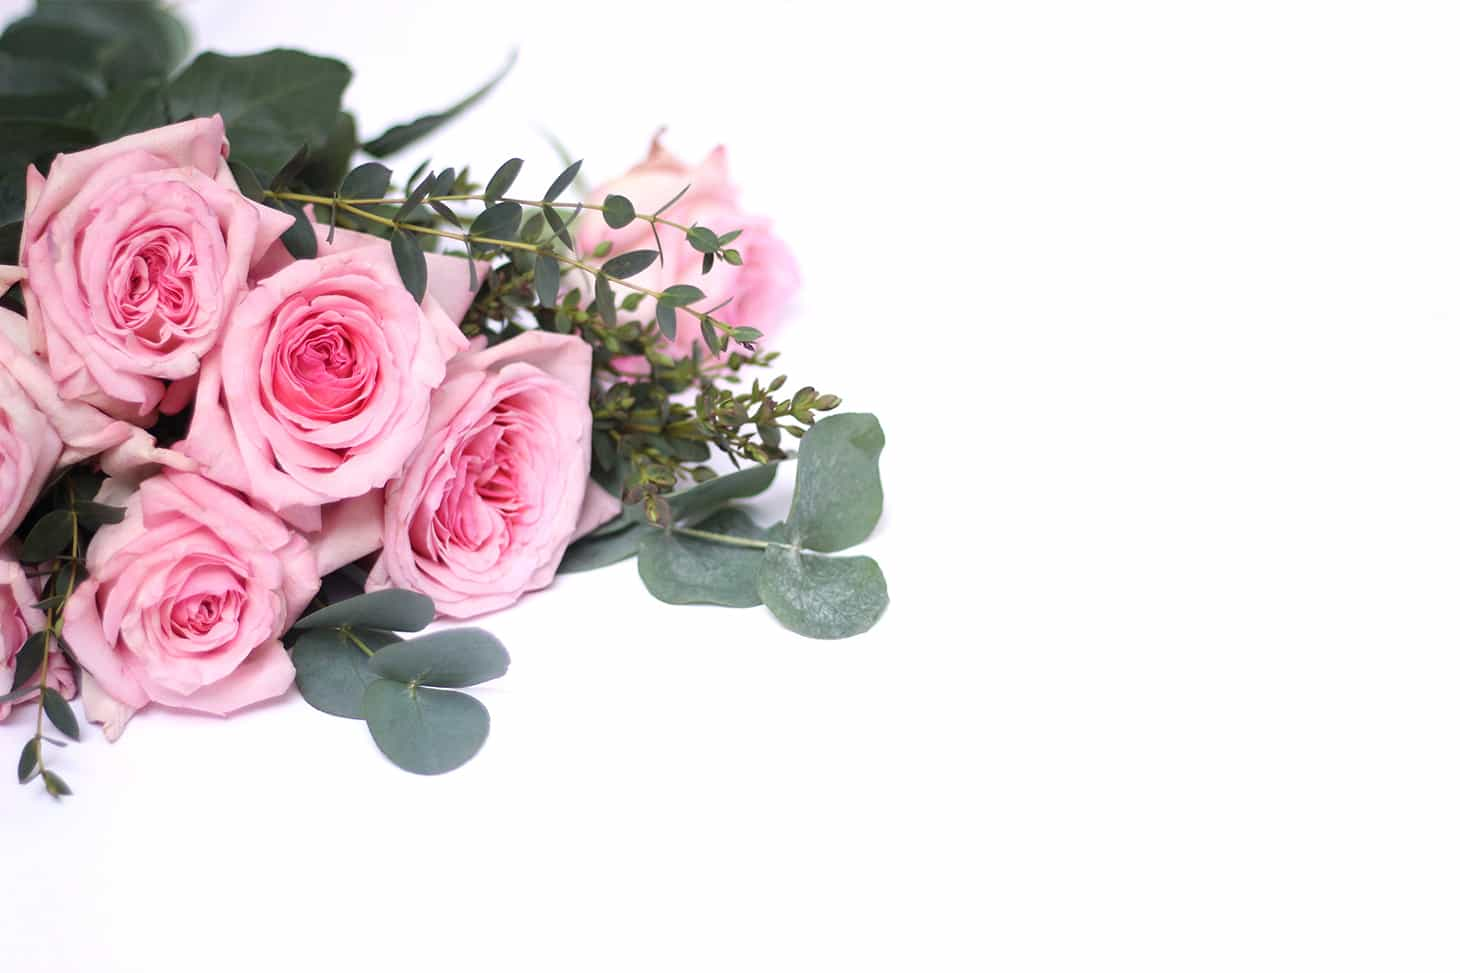 What do florists do with unsold flowers, flower trade, what happens to unsold flowers, rose pink ohara on white background